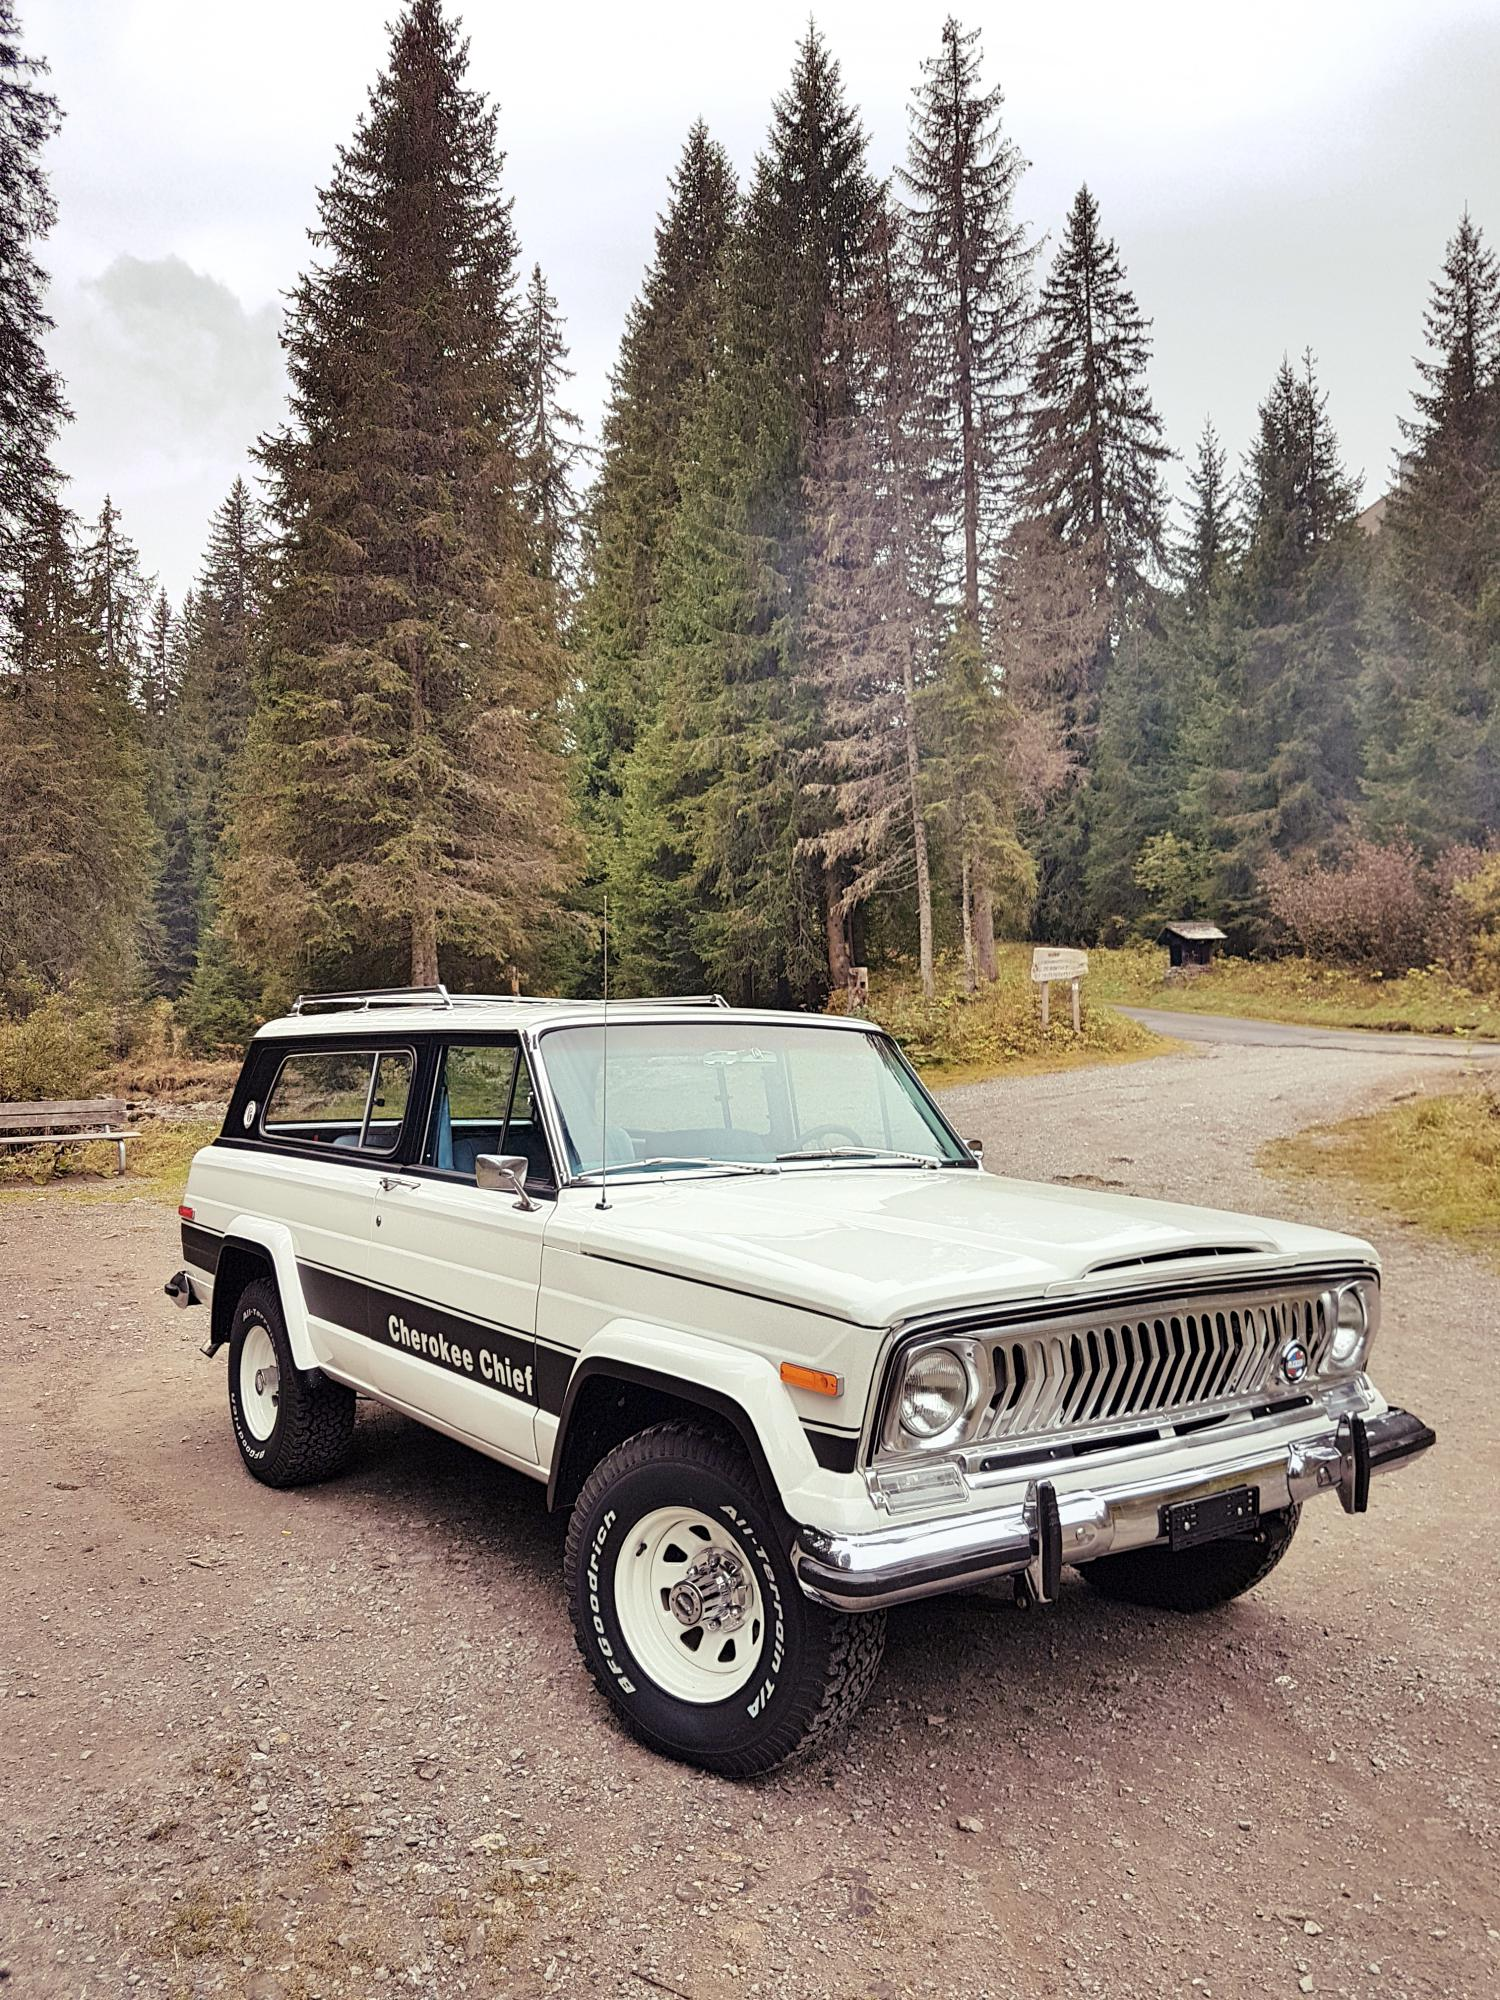 jeep-cherokee-chief-1978-shooting-morgins-switzerland-14.jpg